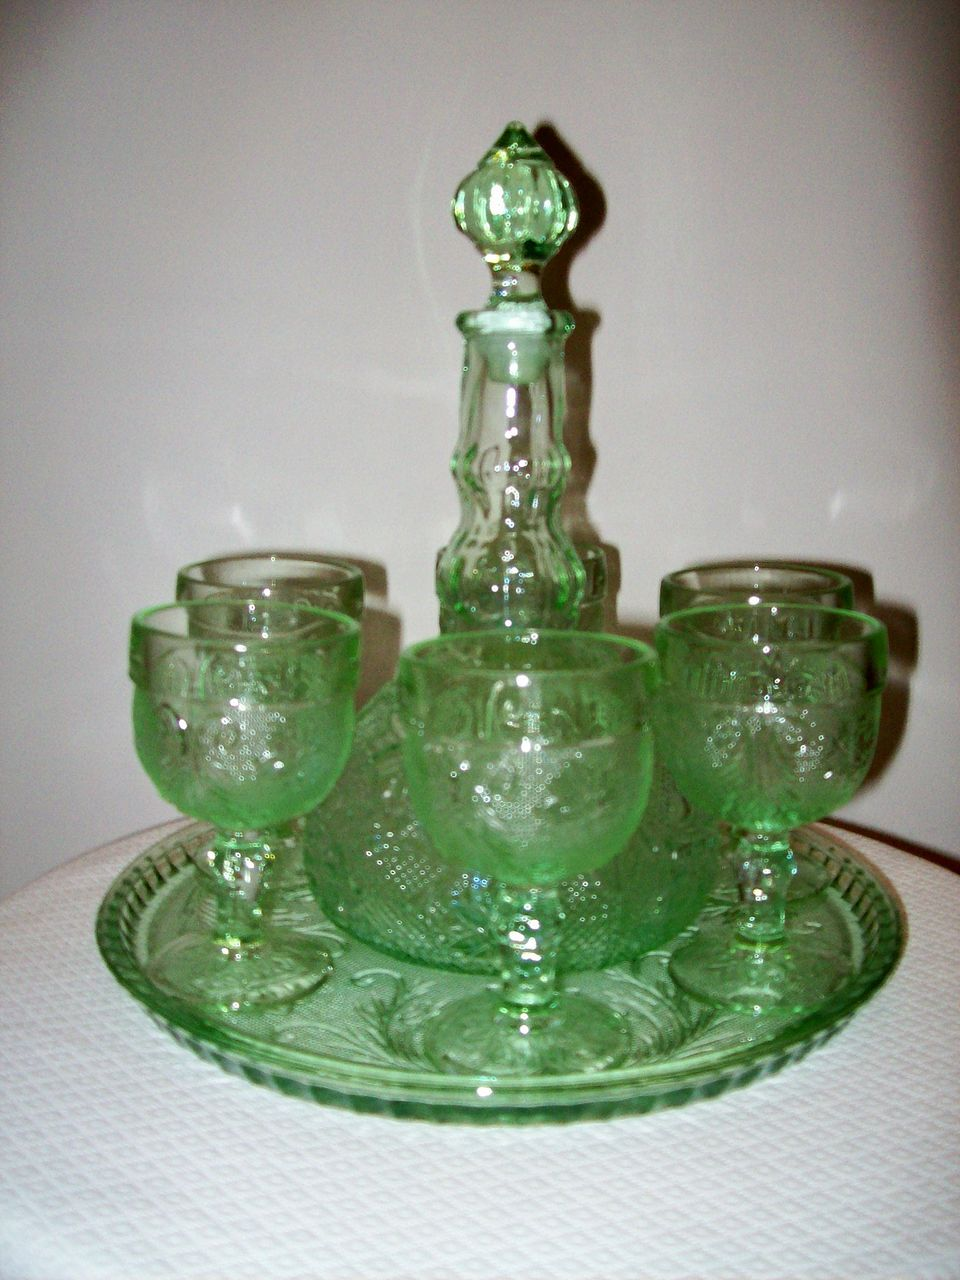 depression sandwich glass decanter  goblets set from cbe on ruby lane